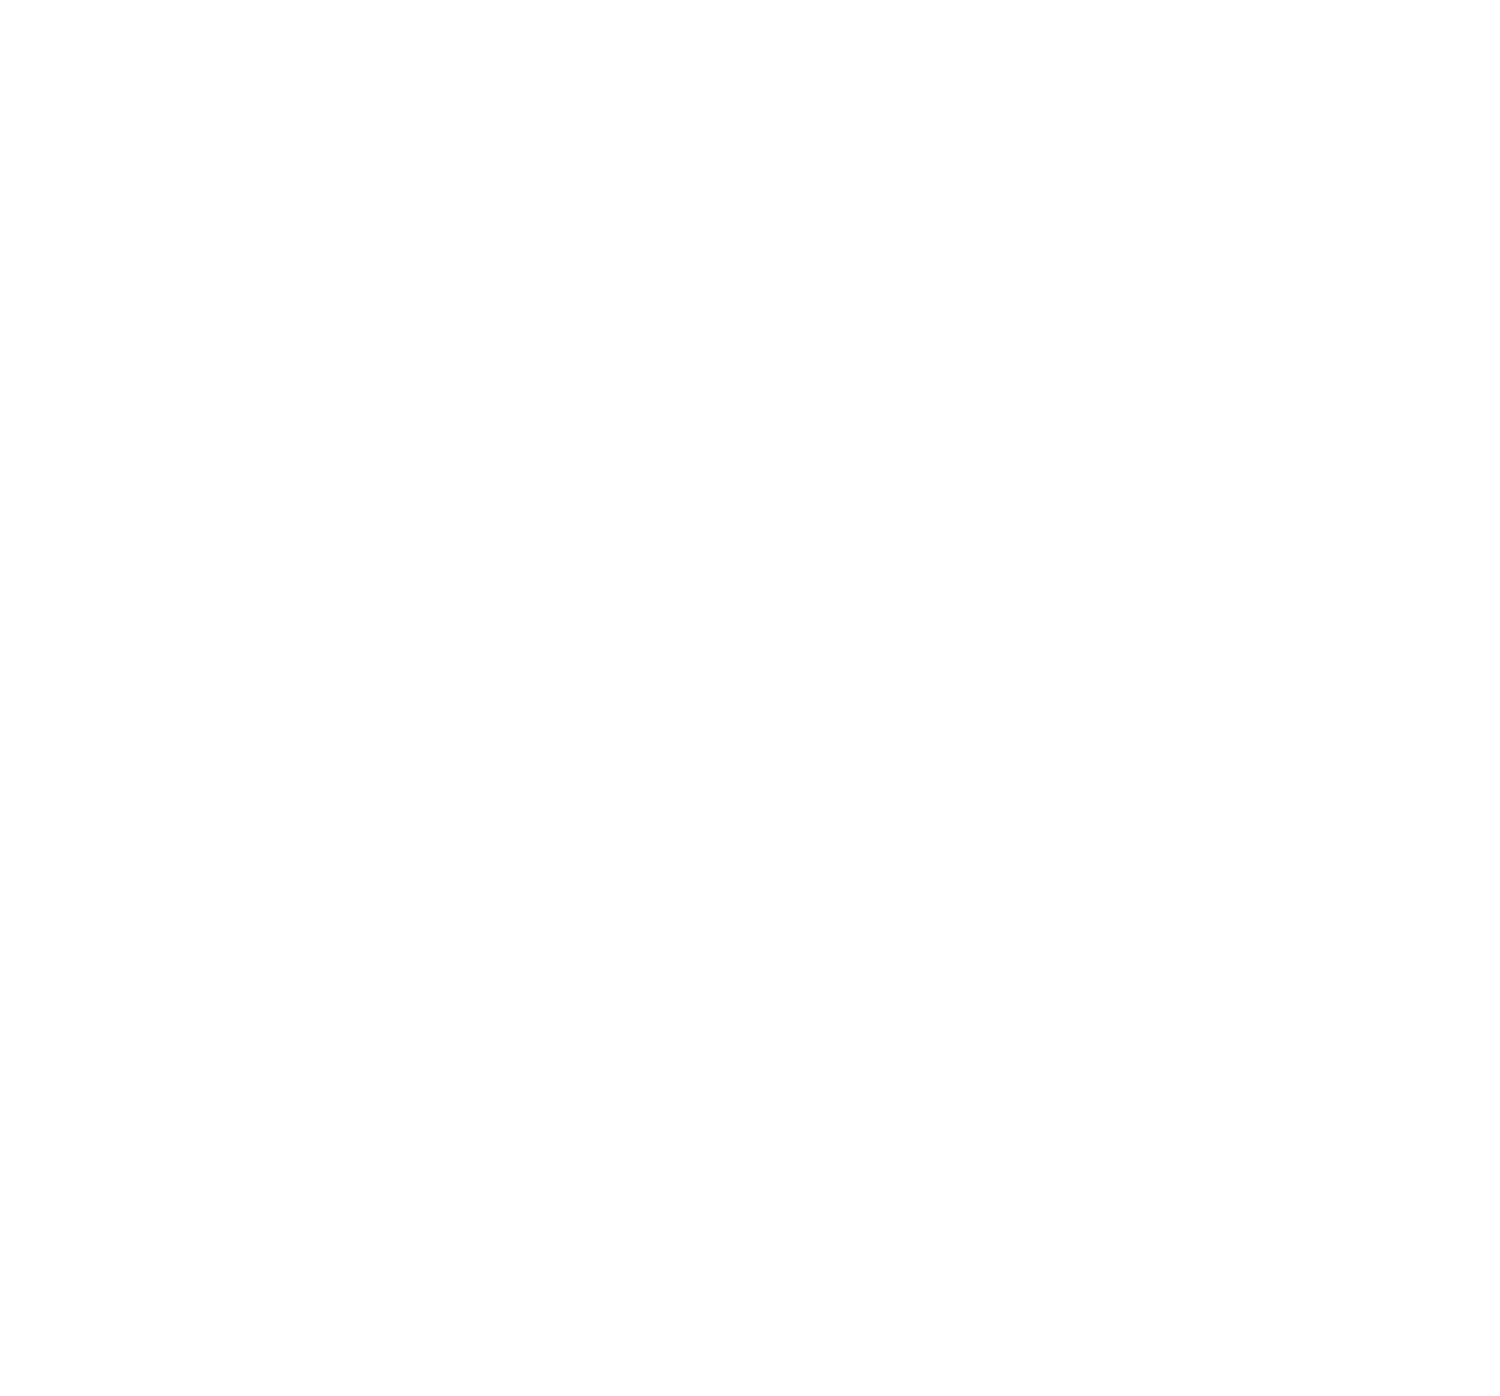 100 Years of Capel Rugs